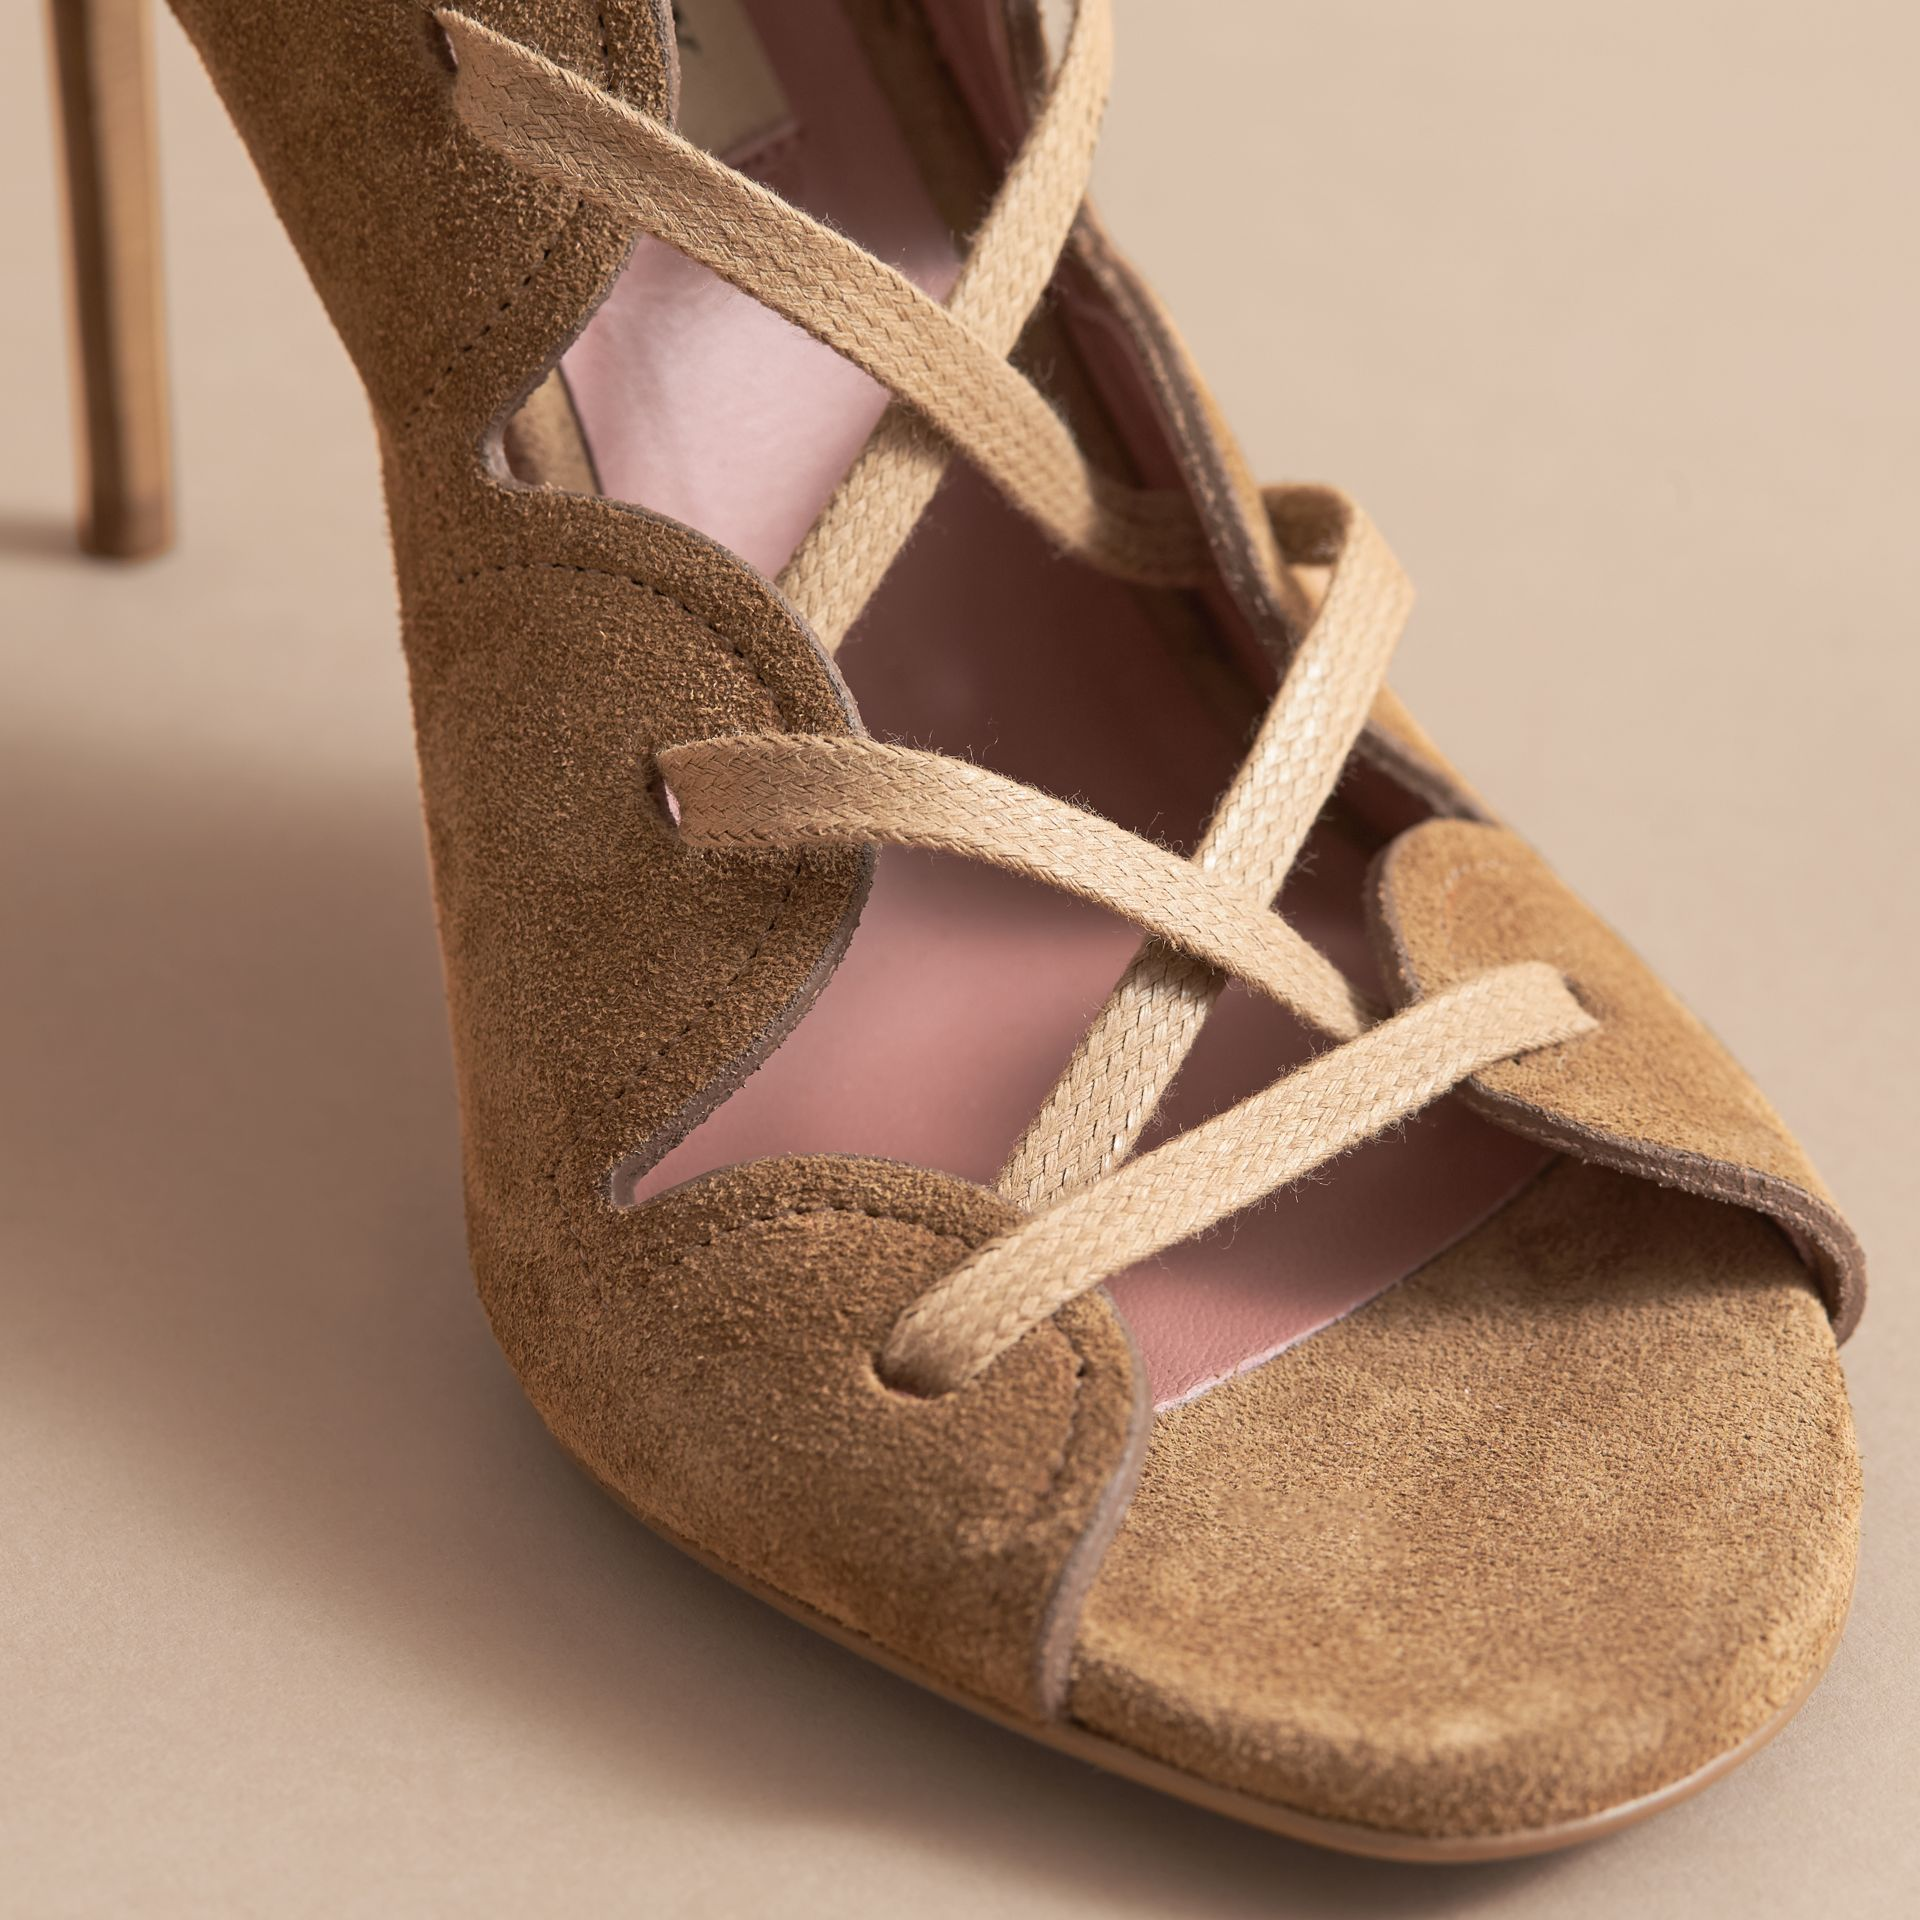 Scalloped Suede Lace-up Sandals in Sandstone - Women | Burberry - gallery image 5